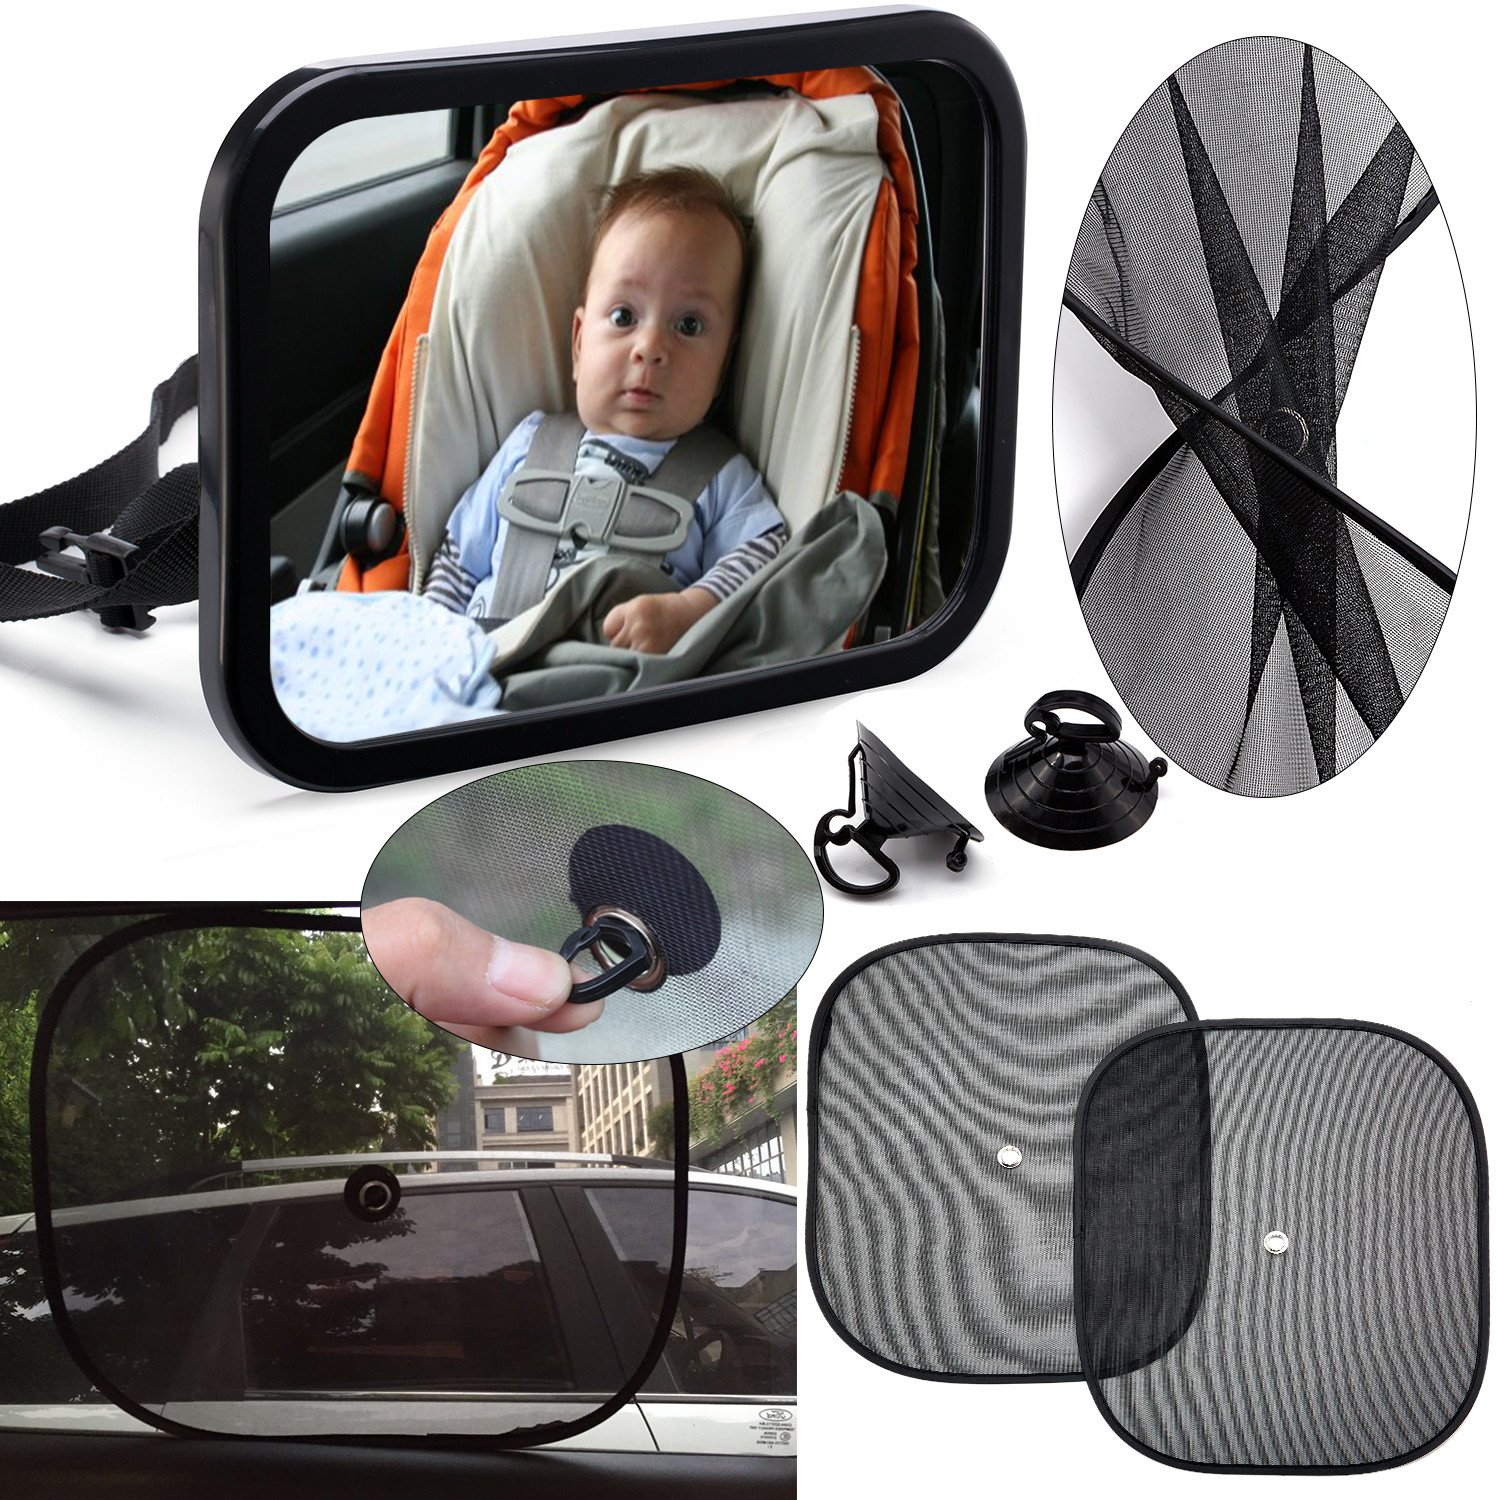 Baby Backseat Mirror for Car [COMBO w/ 2 Universal Window Shades] - View Infant in Rear Facing Car Seat - Newborn Safety With Secure Headrest Double-Strap HomeFlav HF.MFR.HF-8-29-0003